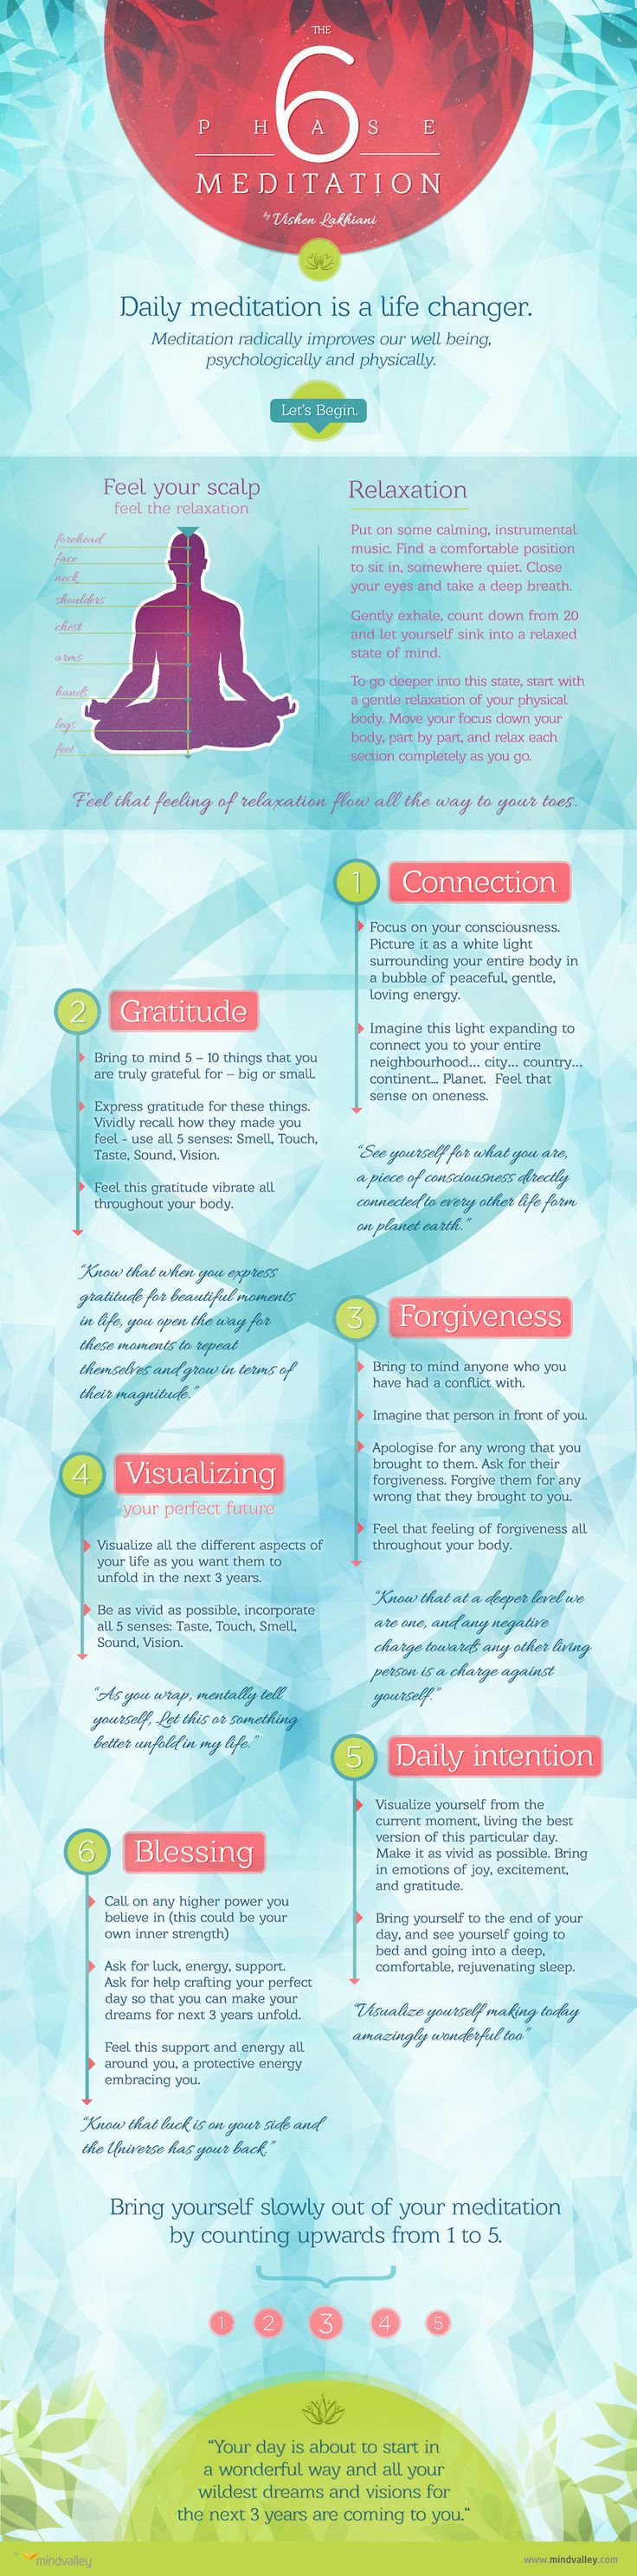 #Meditation infographic. Inspiring #quotes and #affirmations by Calm Down Now, an empowering mobile app for overcoming anxiety. For iOS: http://cal.ms/1mtzooS For Android: http://cal.ms/NaXUeo